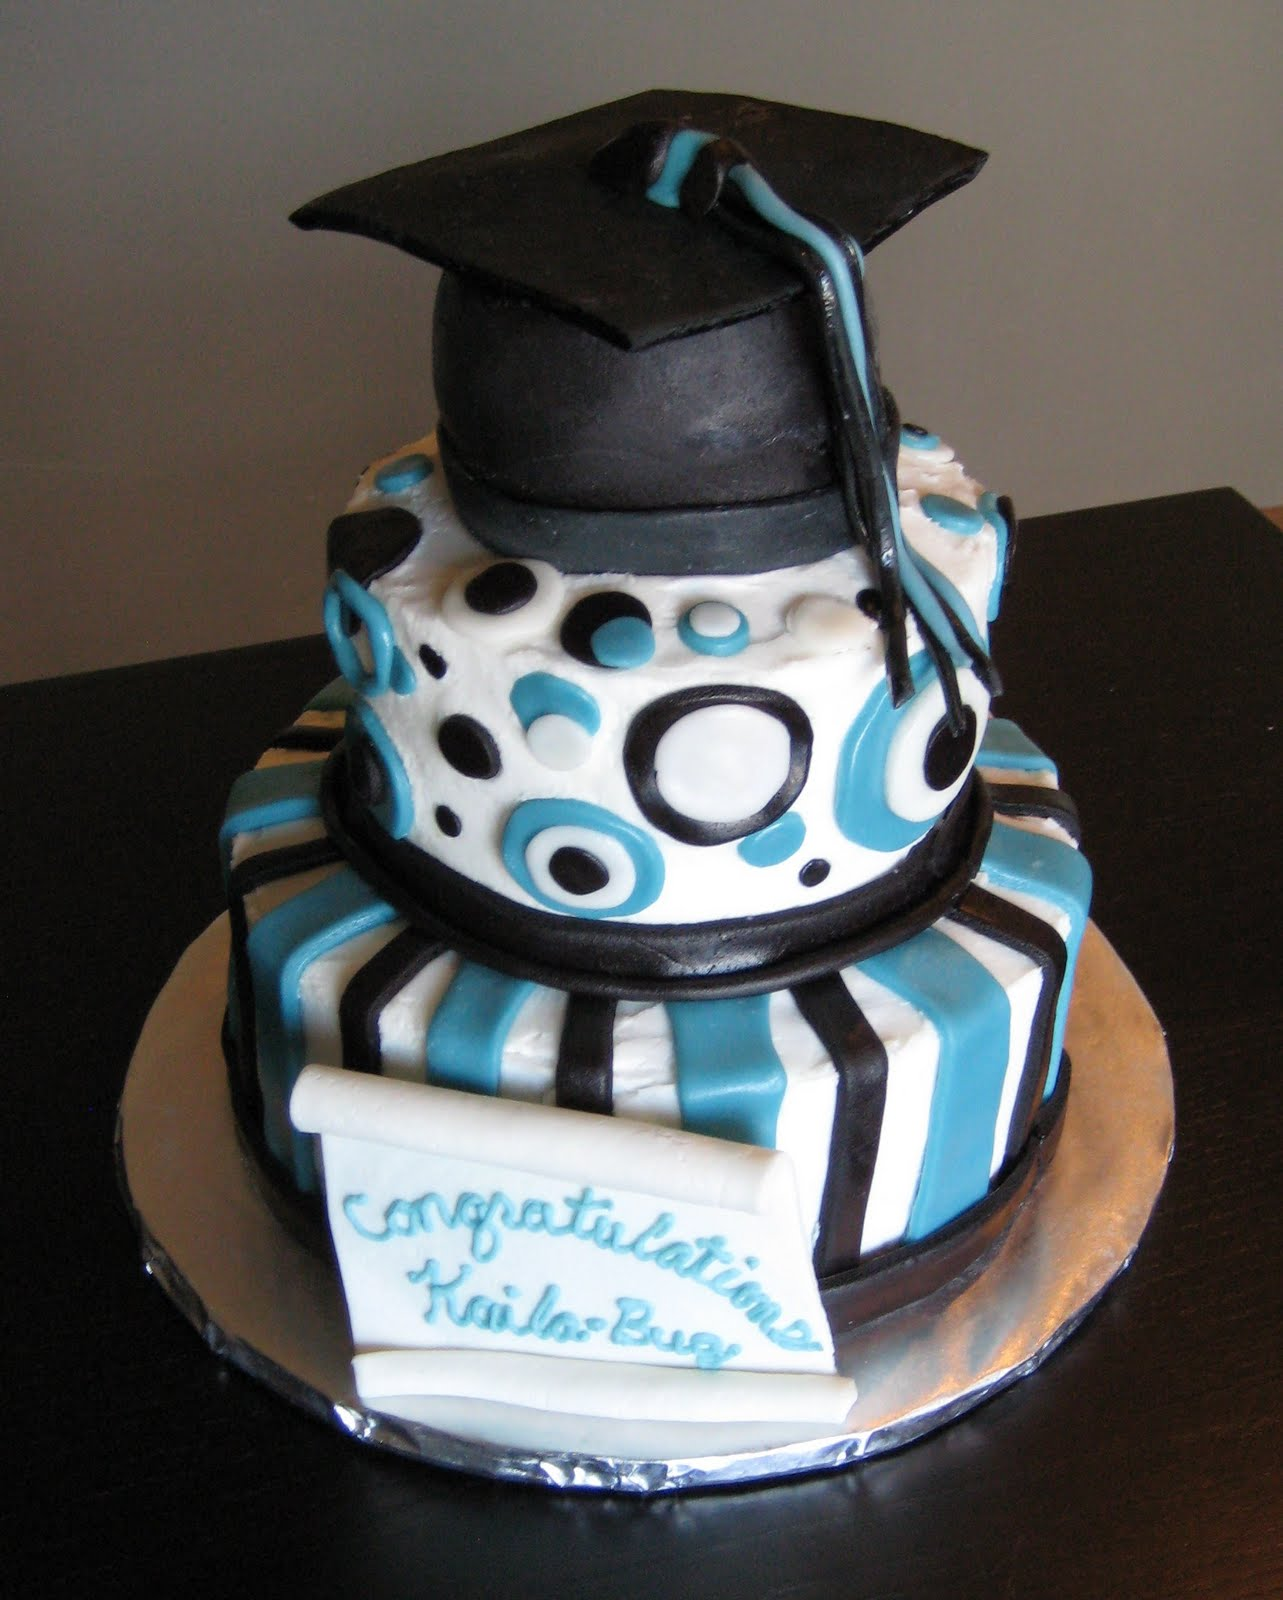 Cake Design Graduation : Custom Cakes by Julie: Graduation Cake & Cupcakes